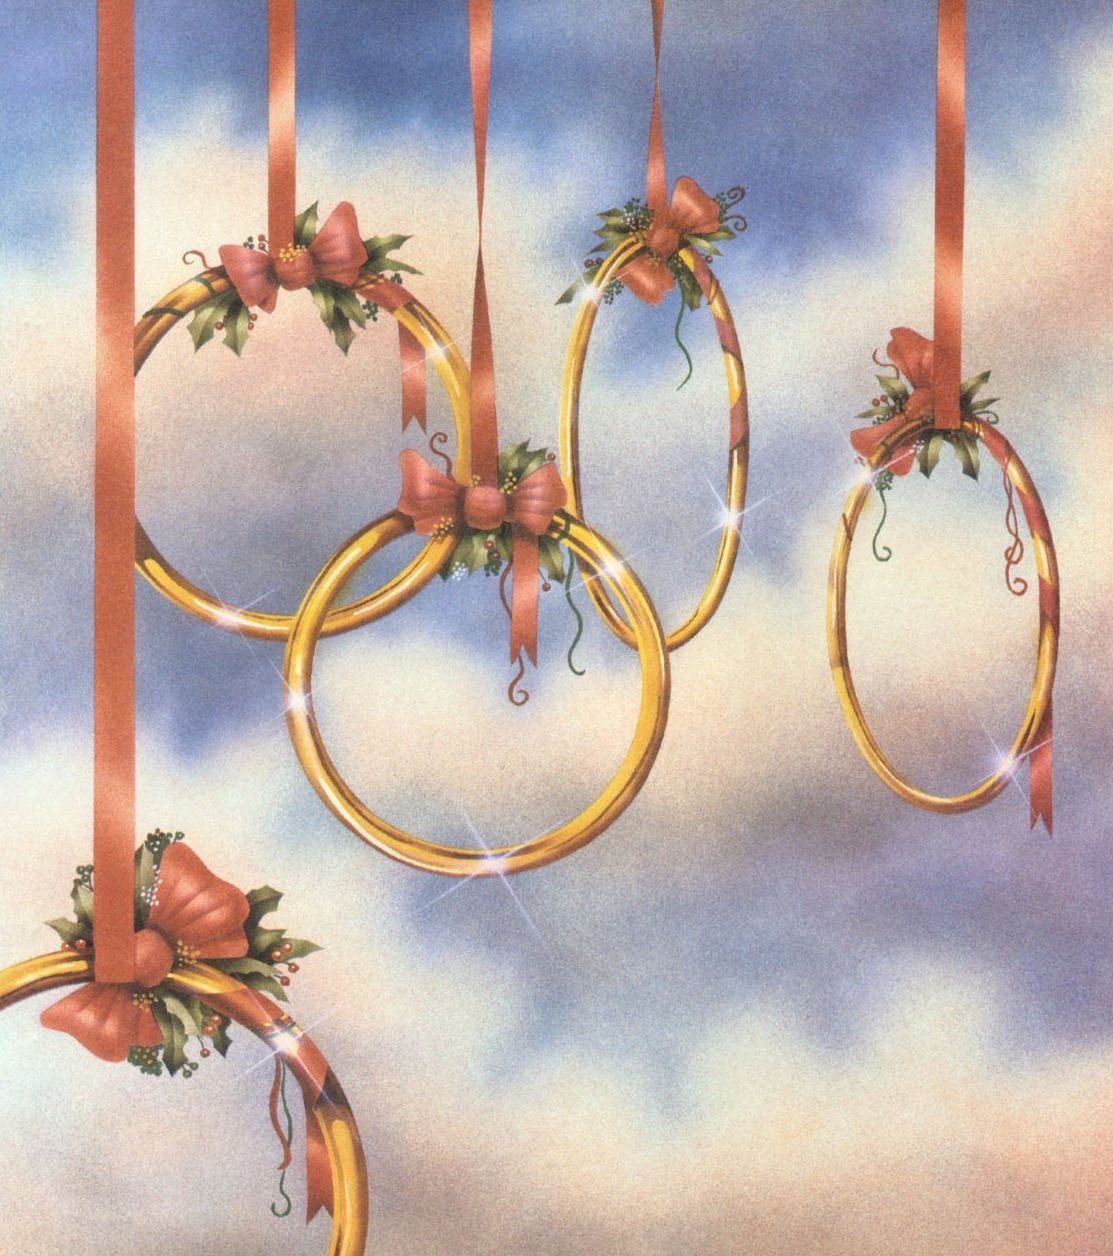 The Twelve Days of Christmas 5 Golden Rings [hanging